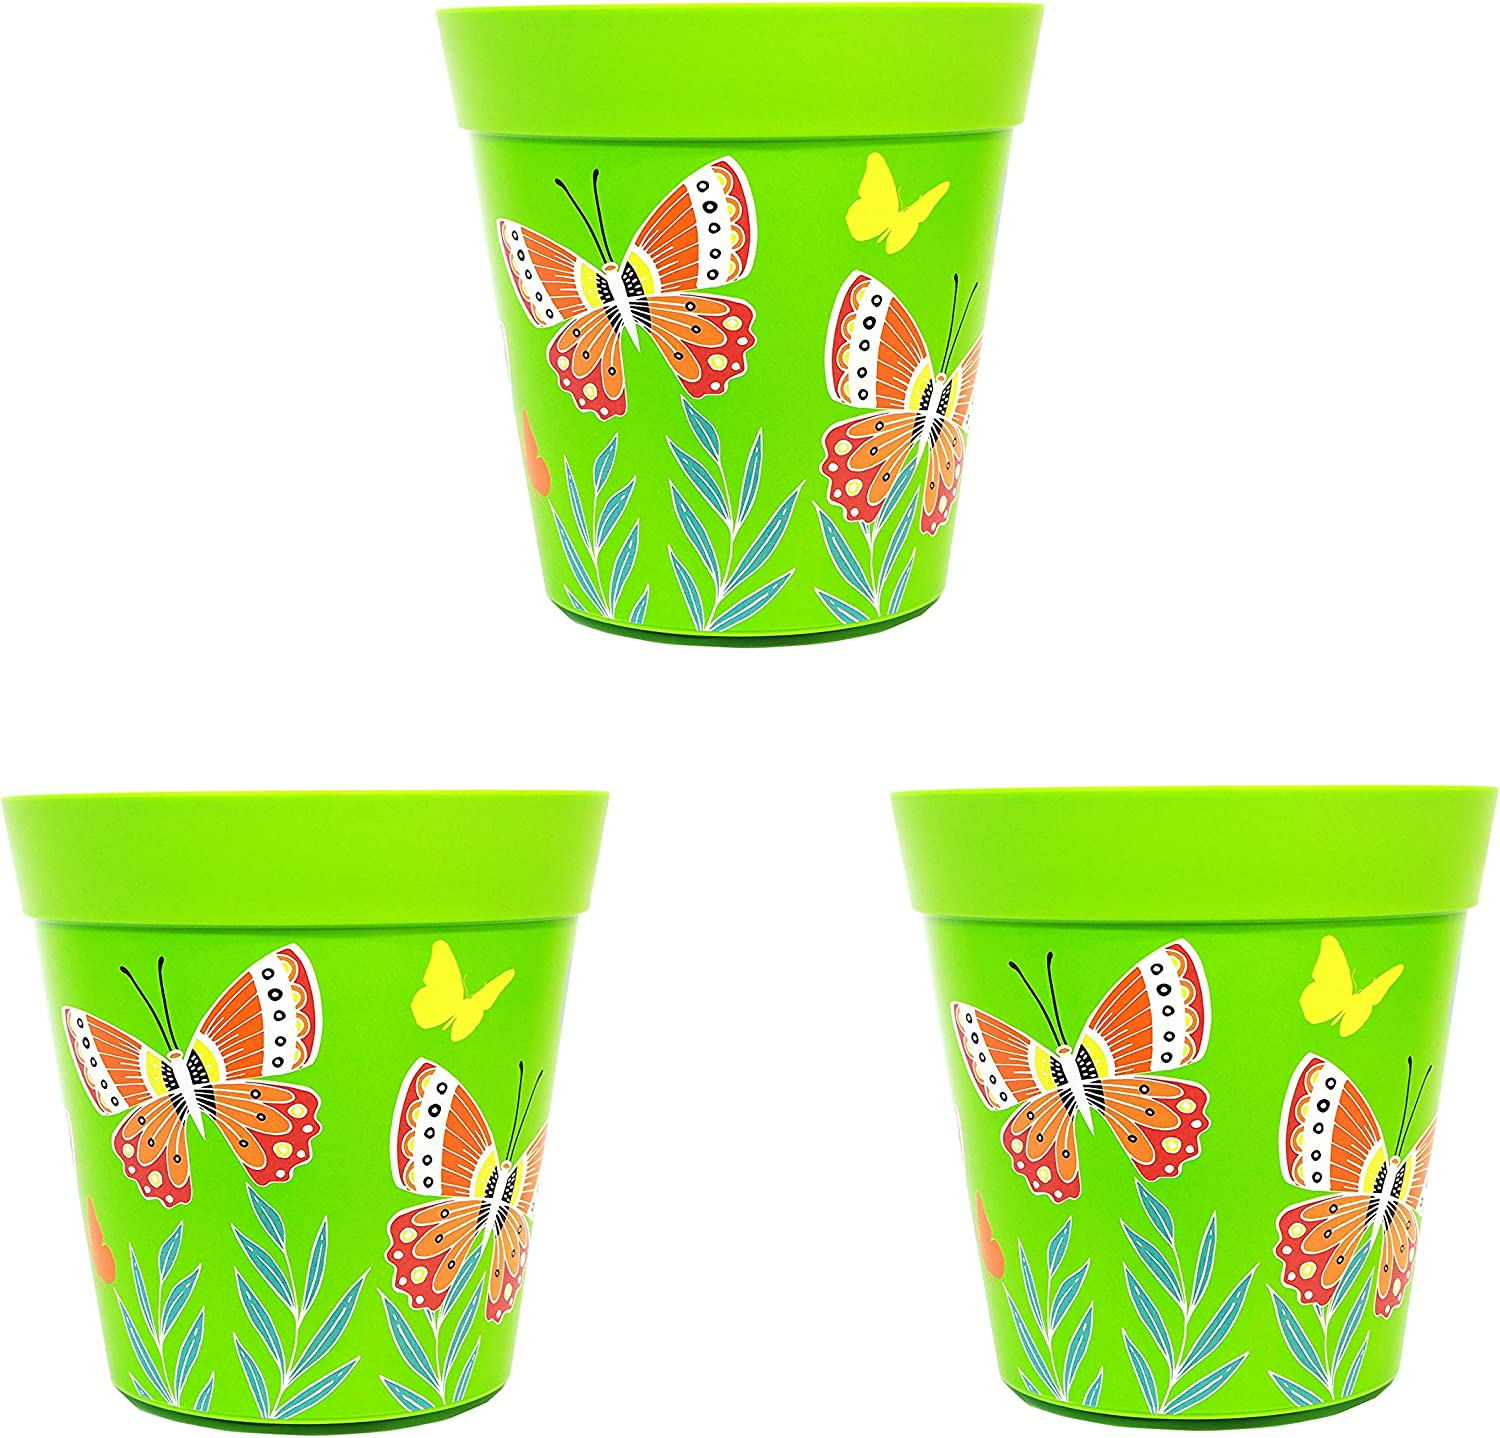 Plant pots set of 3 colourful pots indoor//outdoor herb pots 15cm x 15cm blue green and pink planters